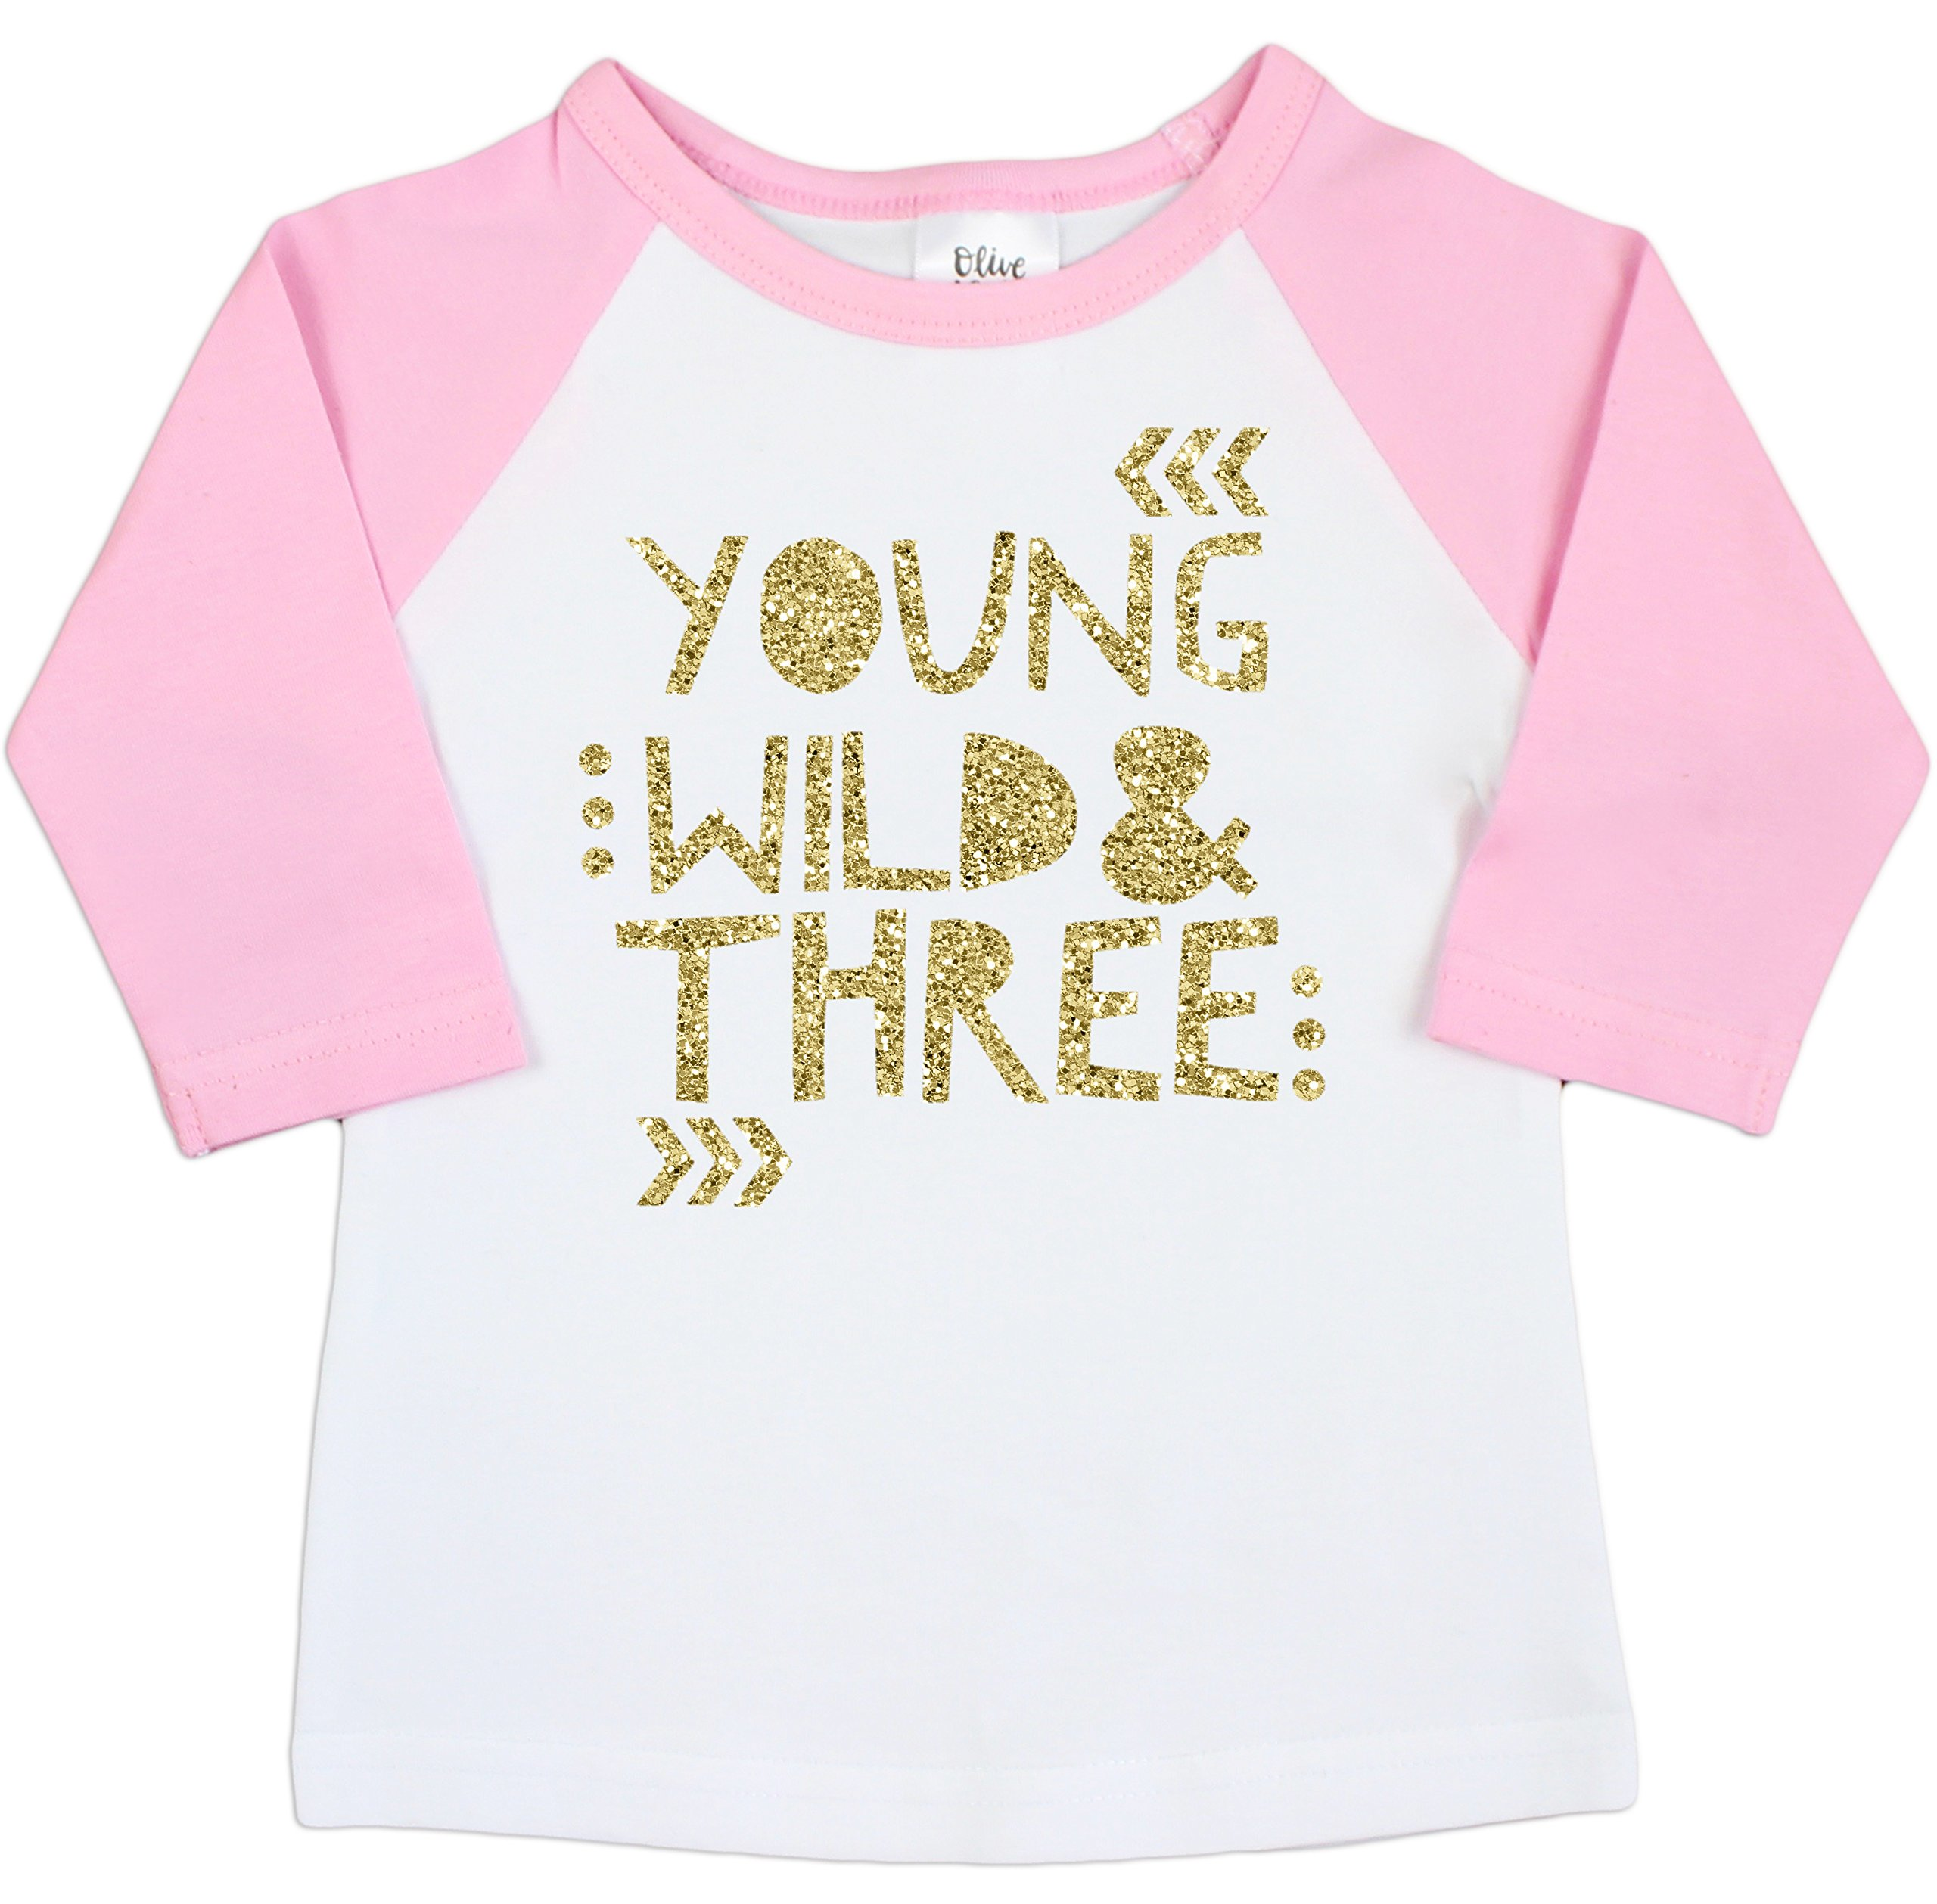 3rd Birthday Shirt for Girls Young Wild & Three Pink Raglan 3/4 sleeve,3T,Pink